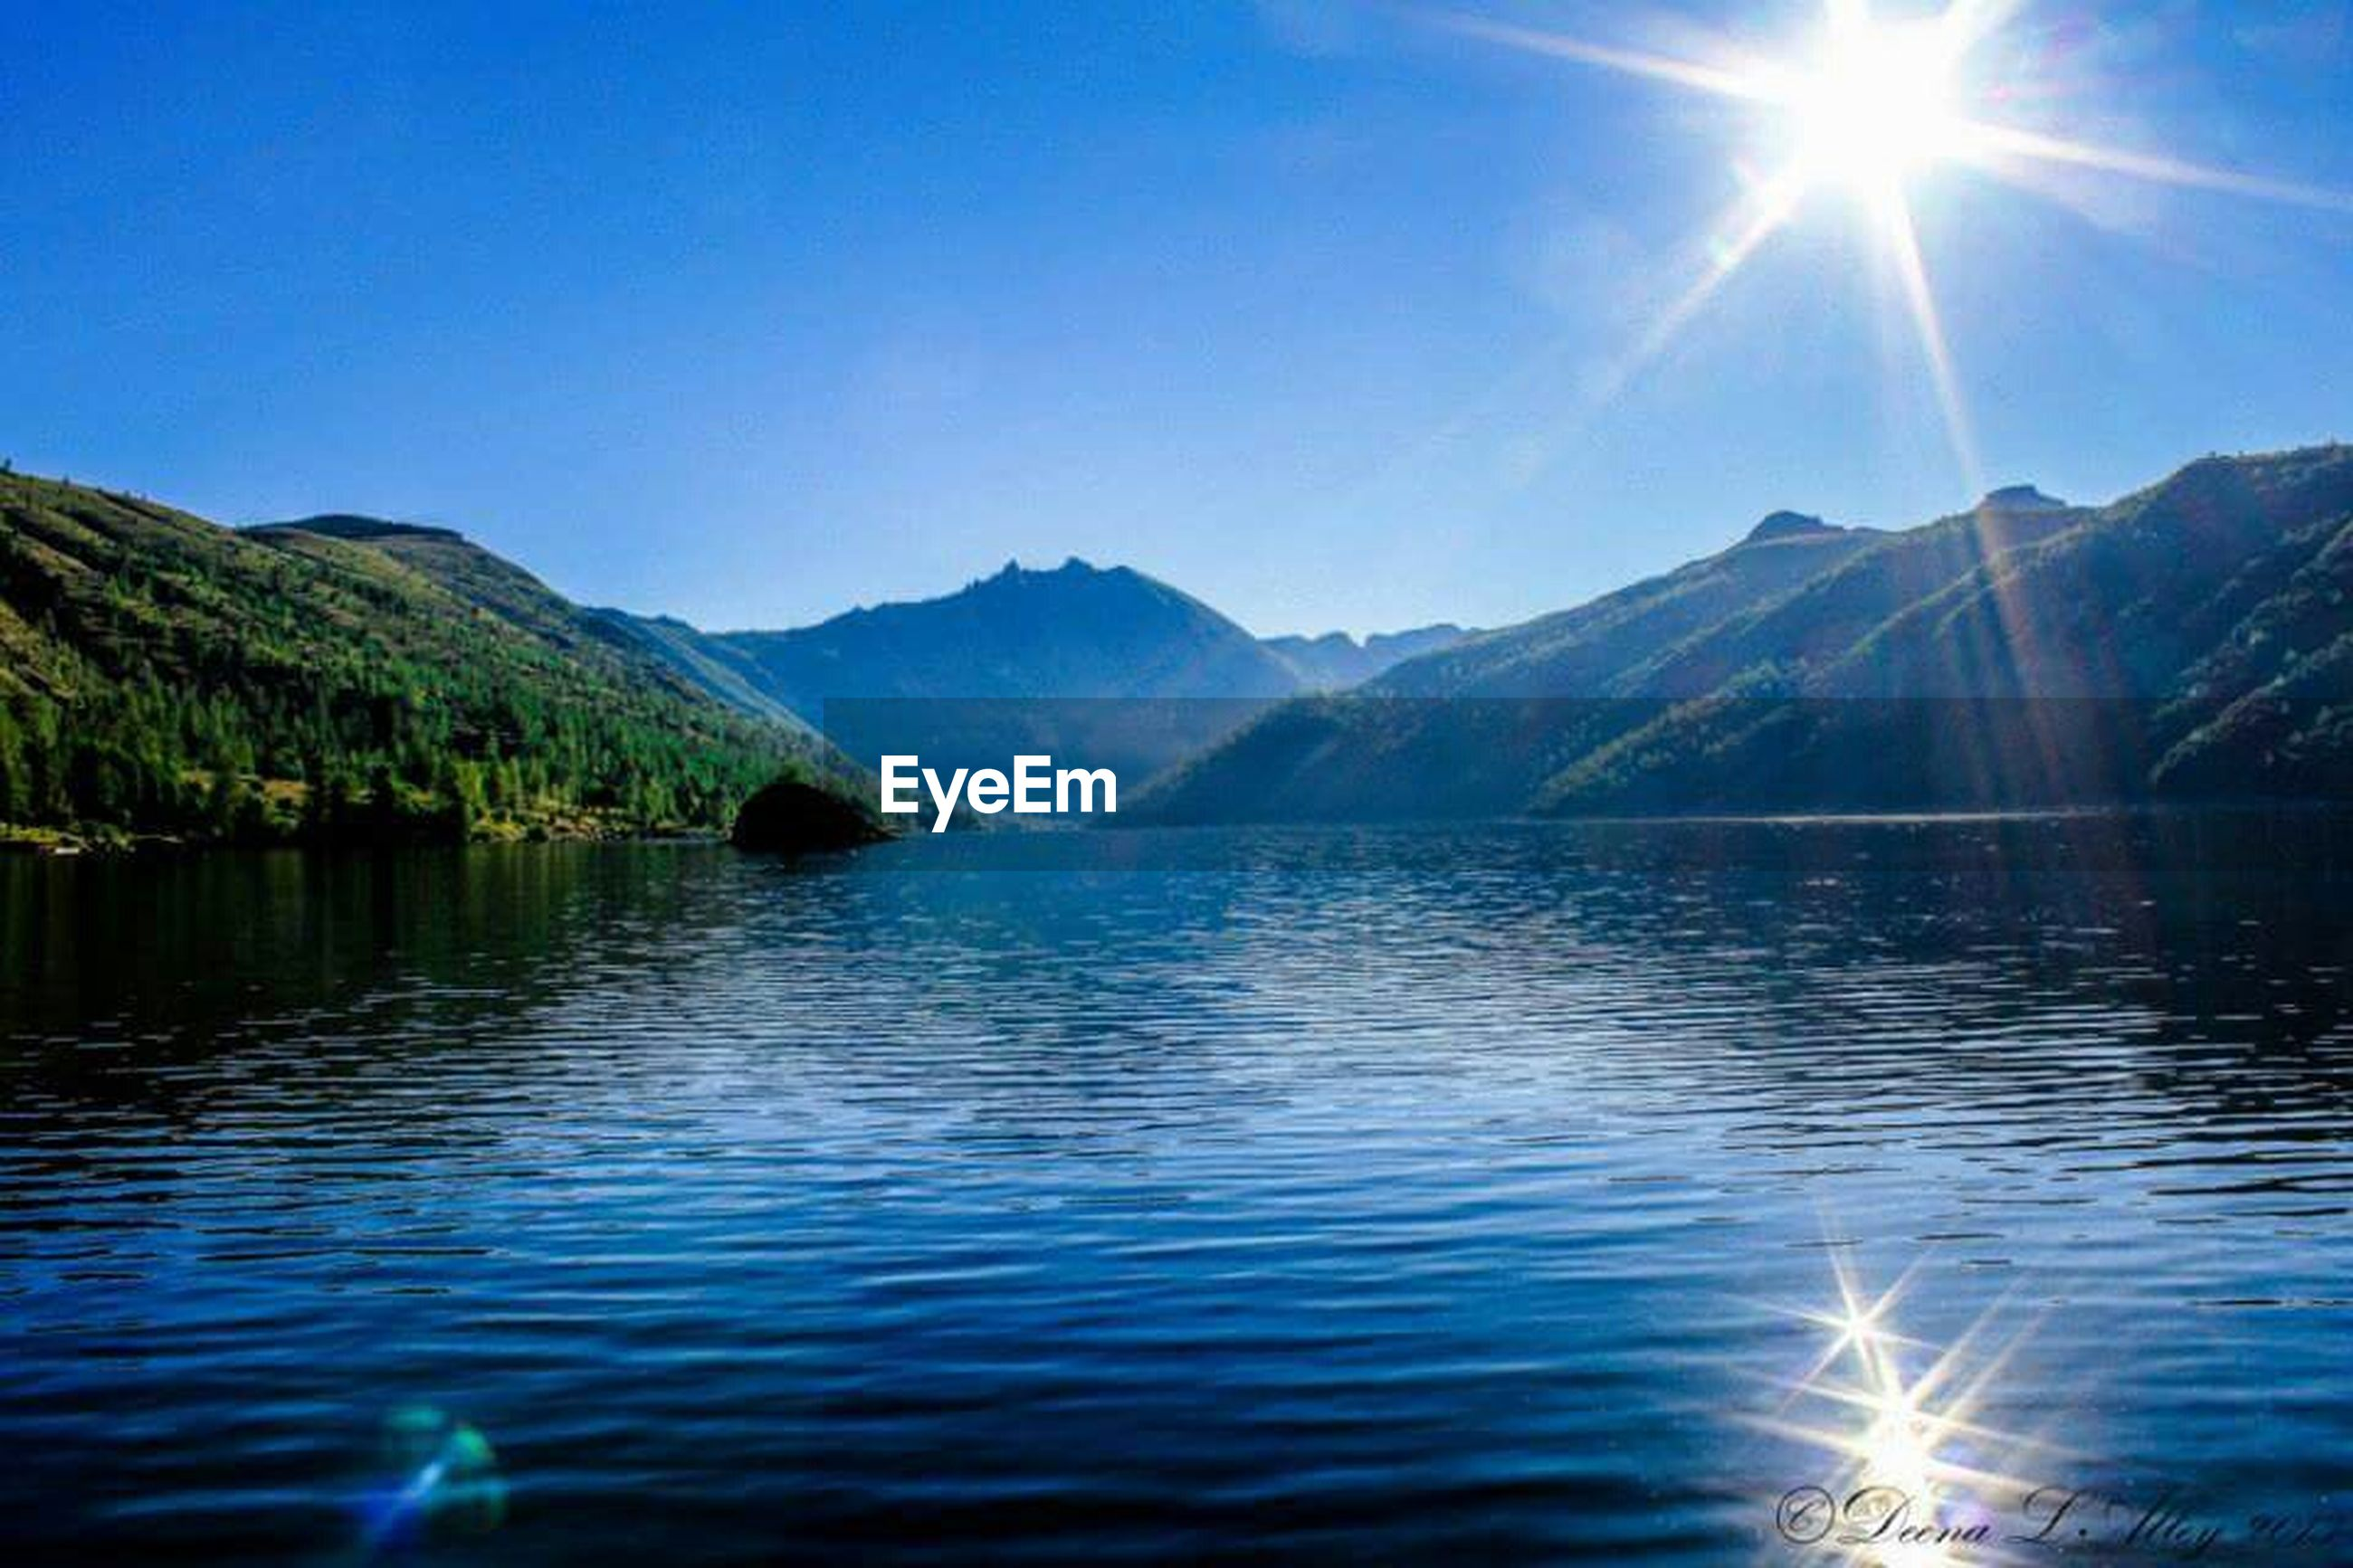 water, mountain, sun, sunbeam, sunlight, scenics, tranquil scene, beauty in nature, waterfront, tranquility, mountain range, lake, reflection, lens flare, blue, nature, clear sky, idyllic, sunny, rippled